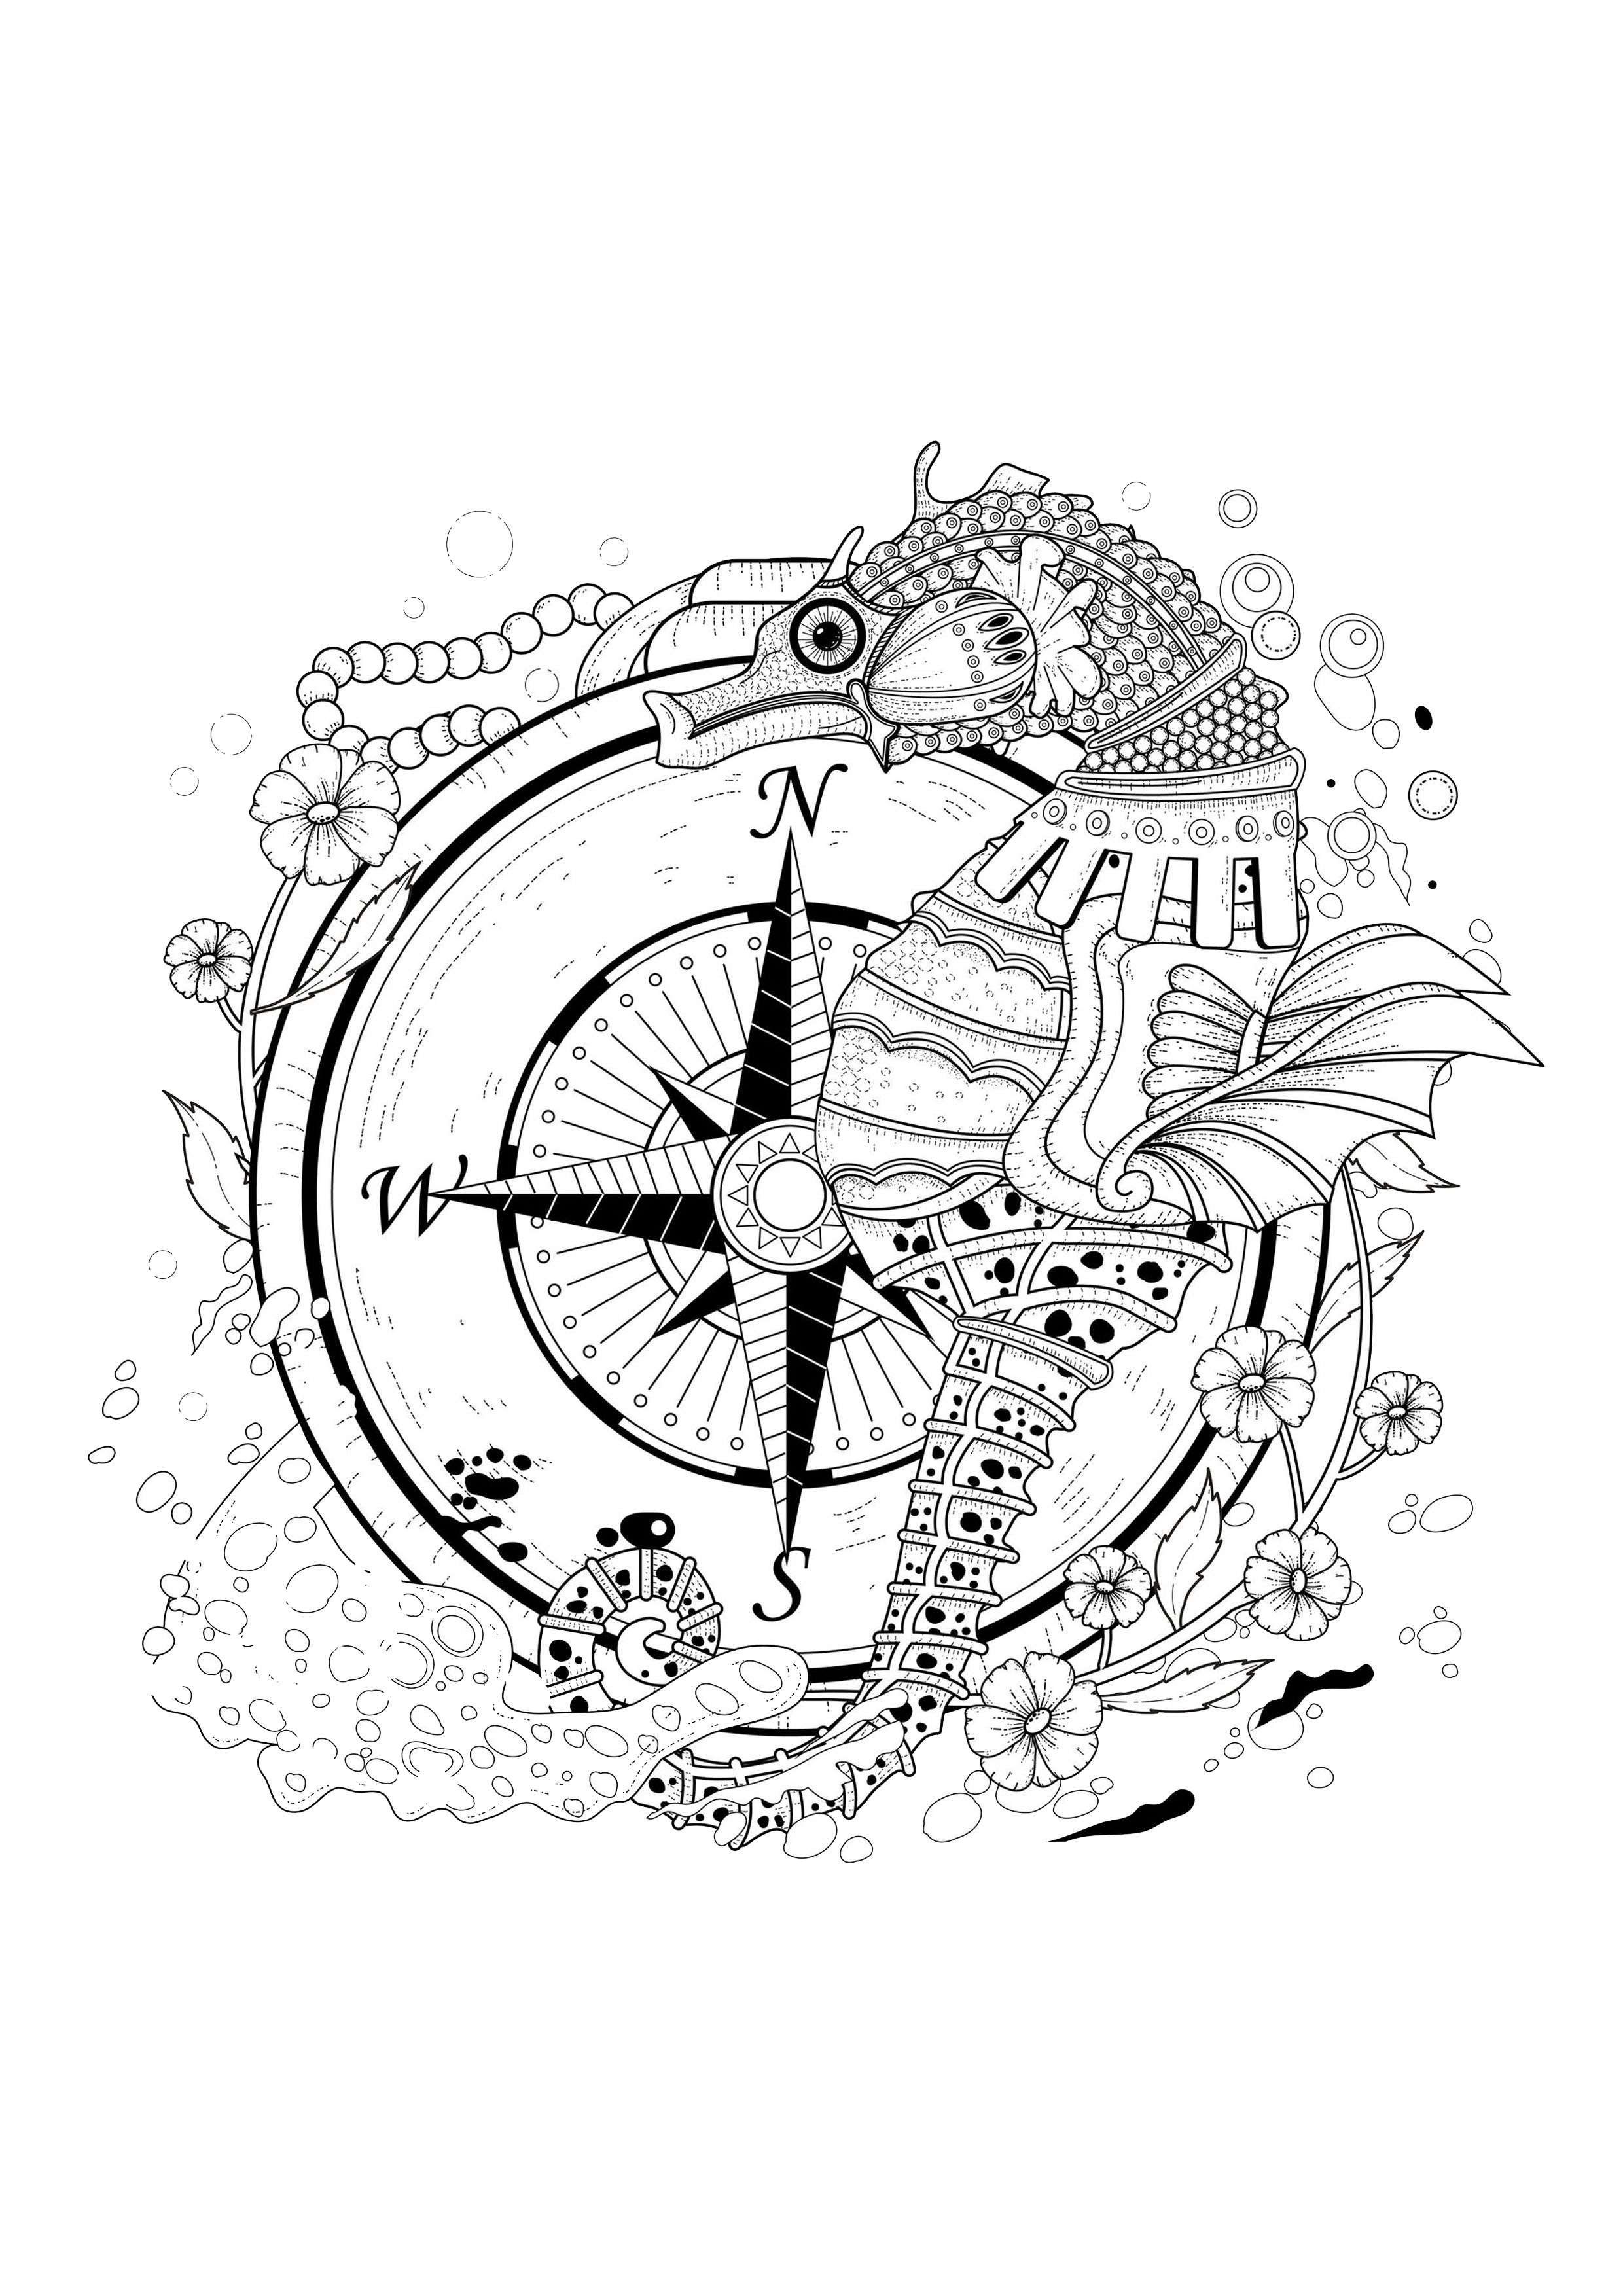 Water worlds coloring pages for adults coloring page Coloring book with water